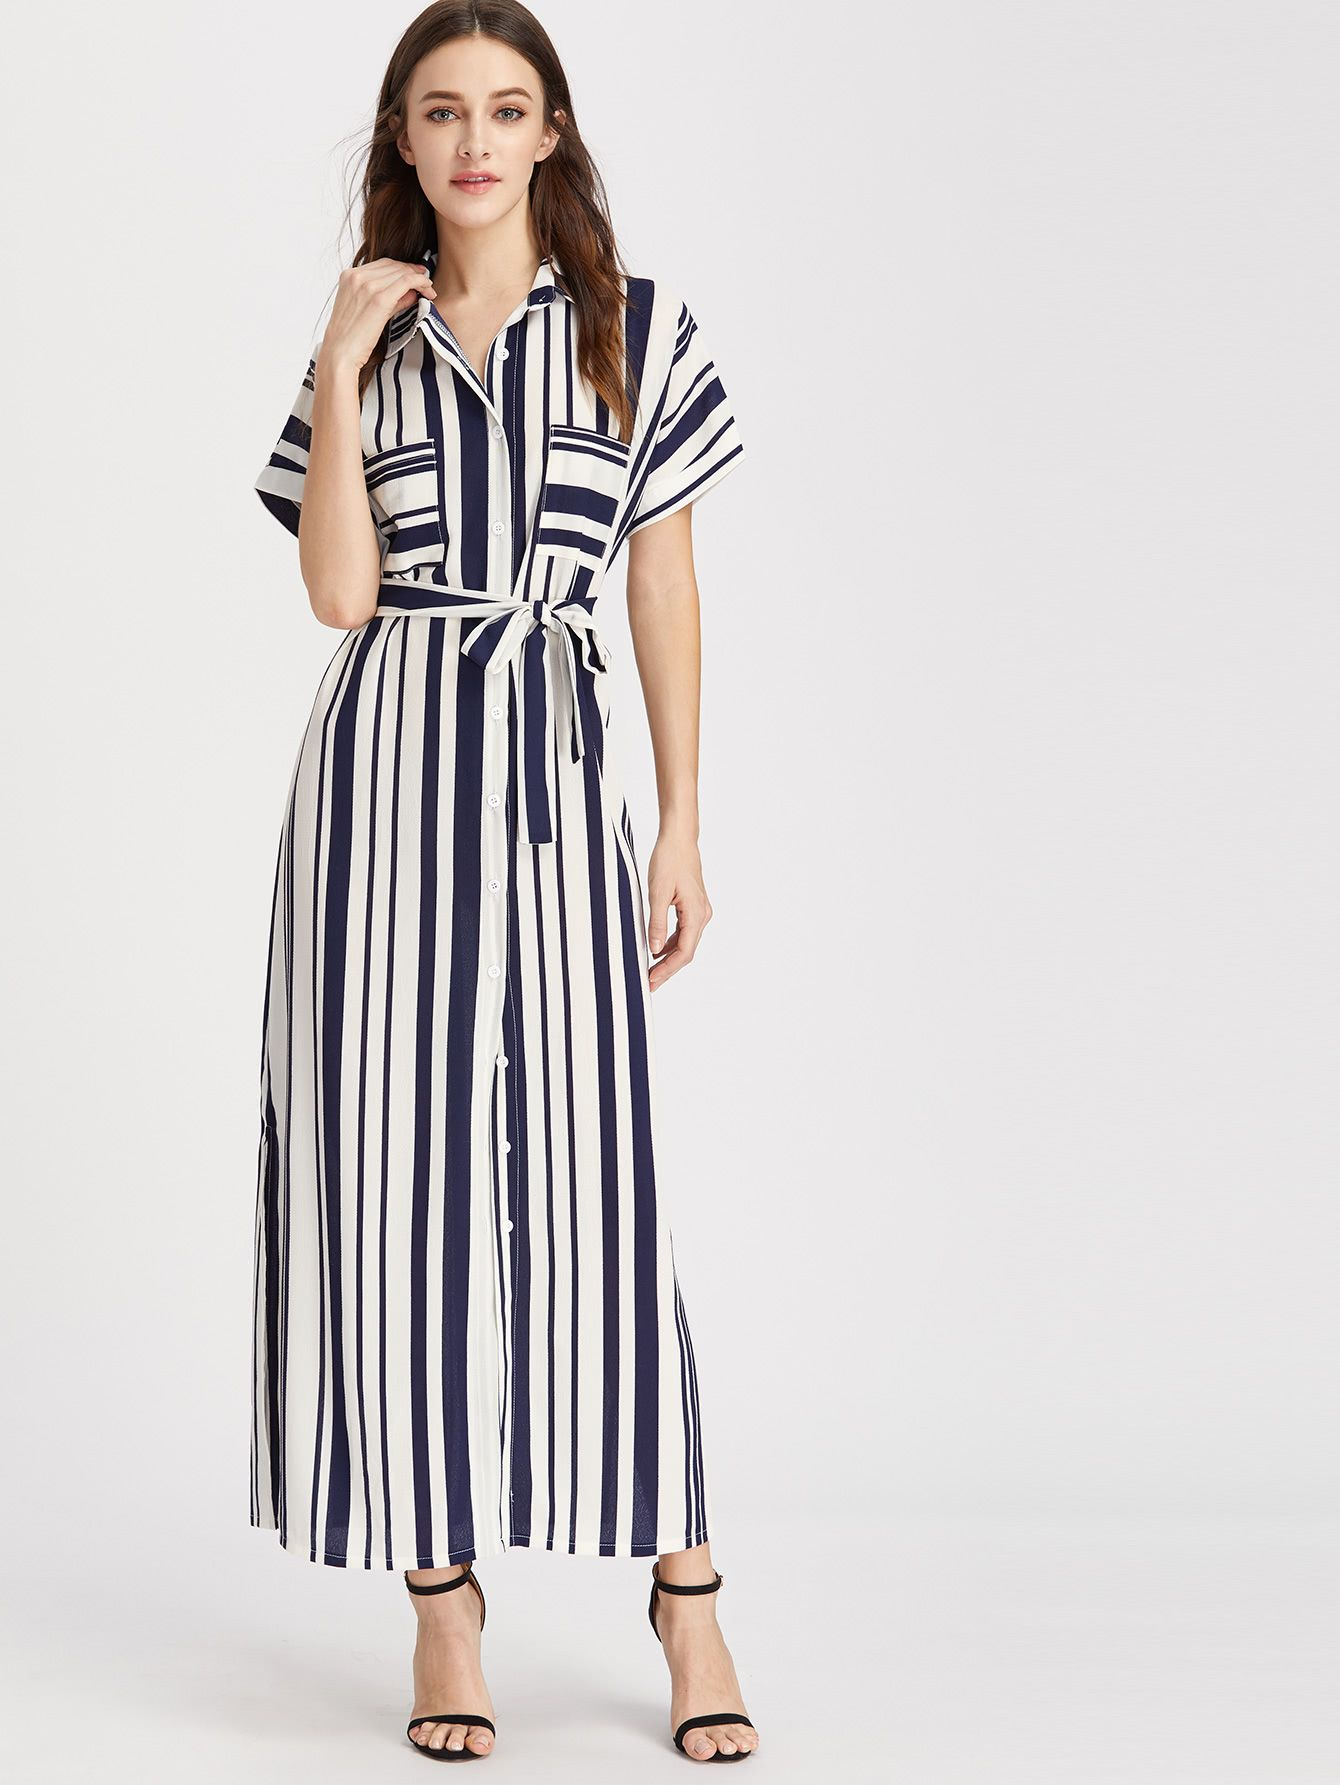 084d9a54108d Contrast Striped Full Length Dress -SheIn(Sheinside) | DO SZYCIA ...